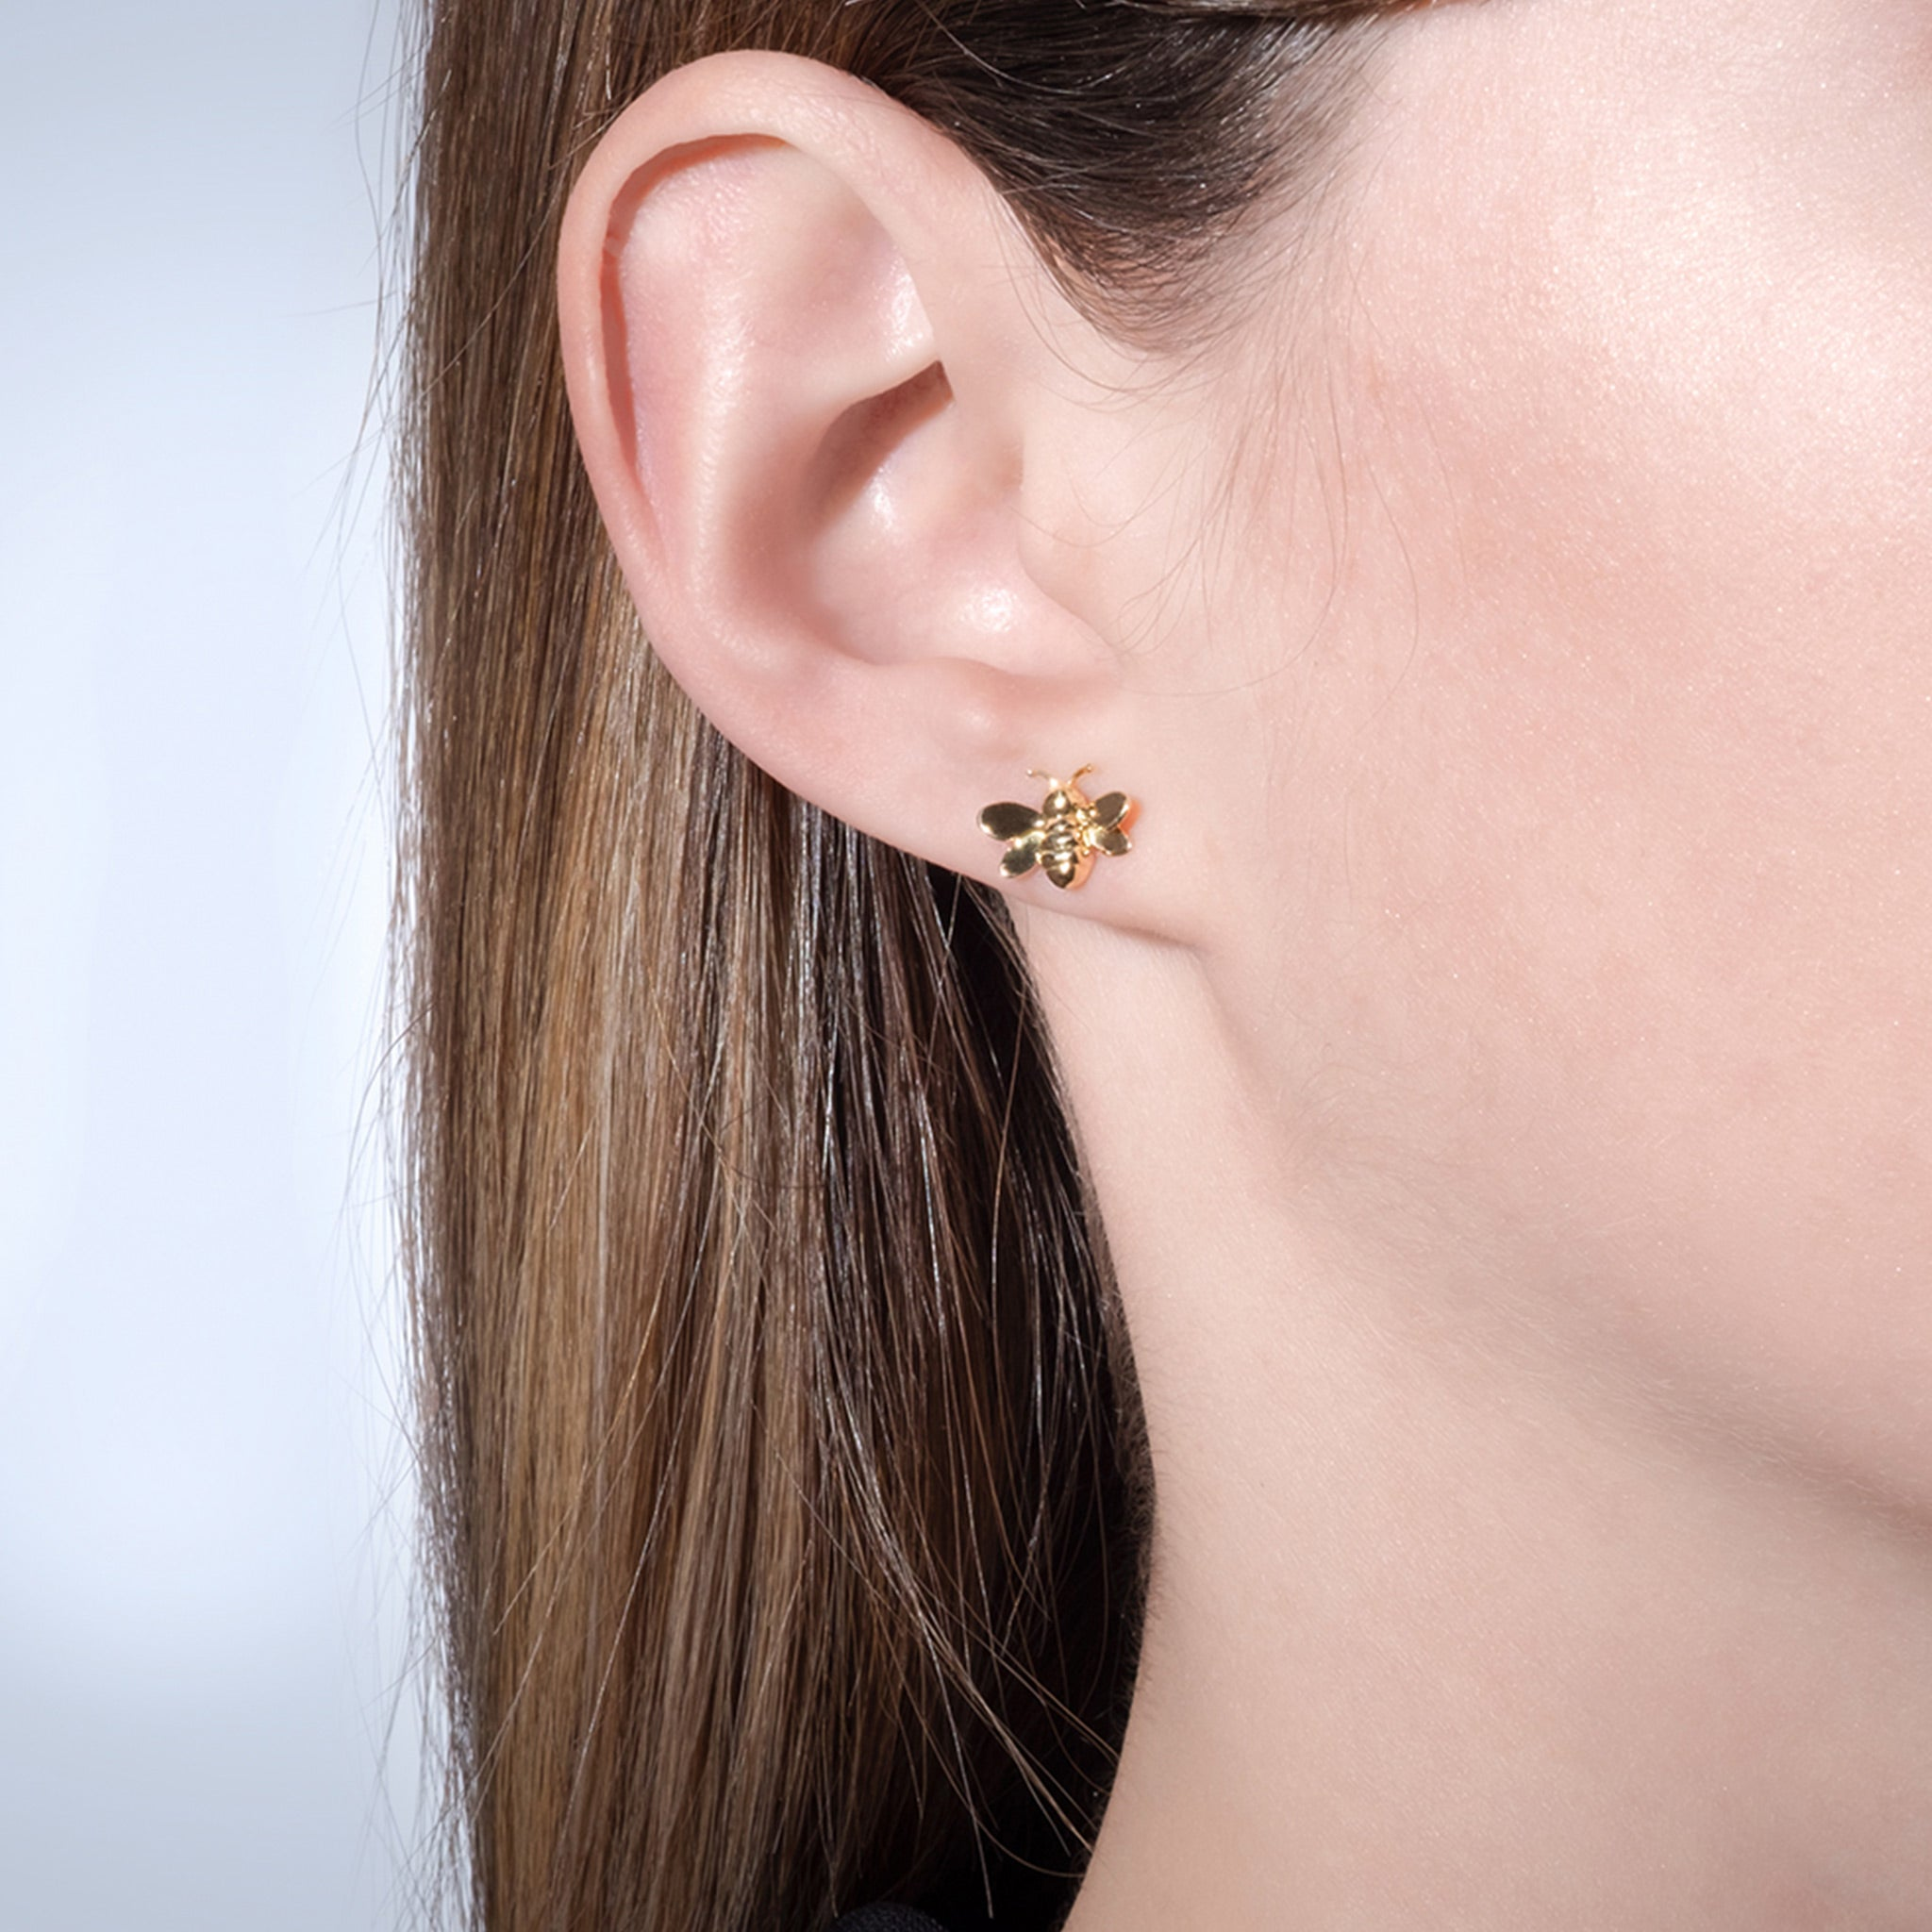 Mimi-So-Wonderland-Bumble-Bee-Small-Stud-Earrings.jpg